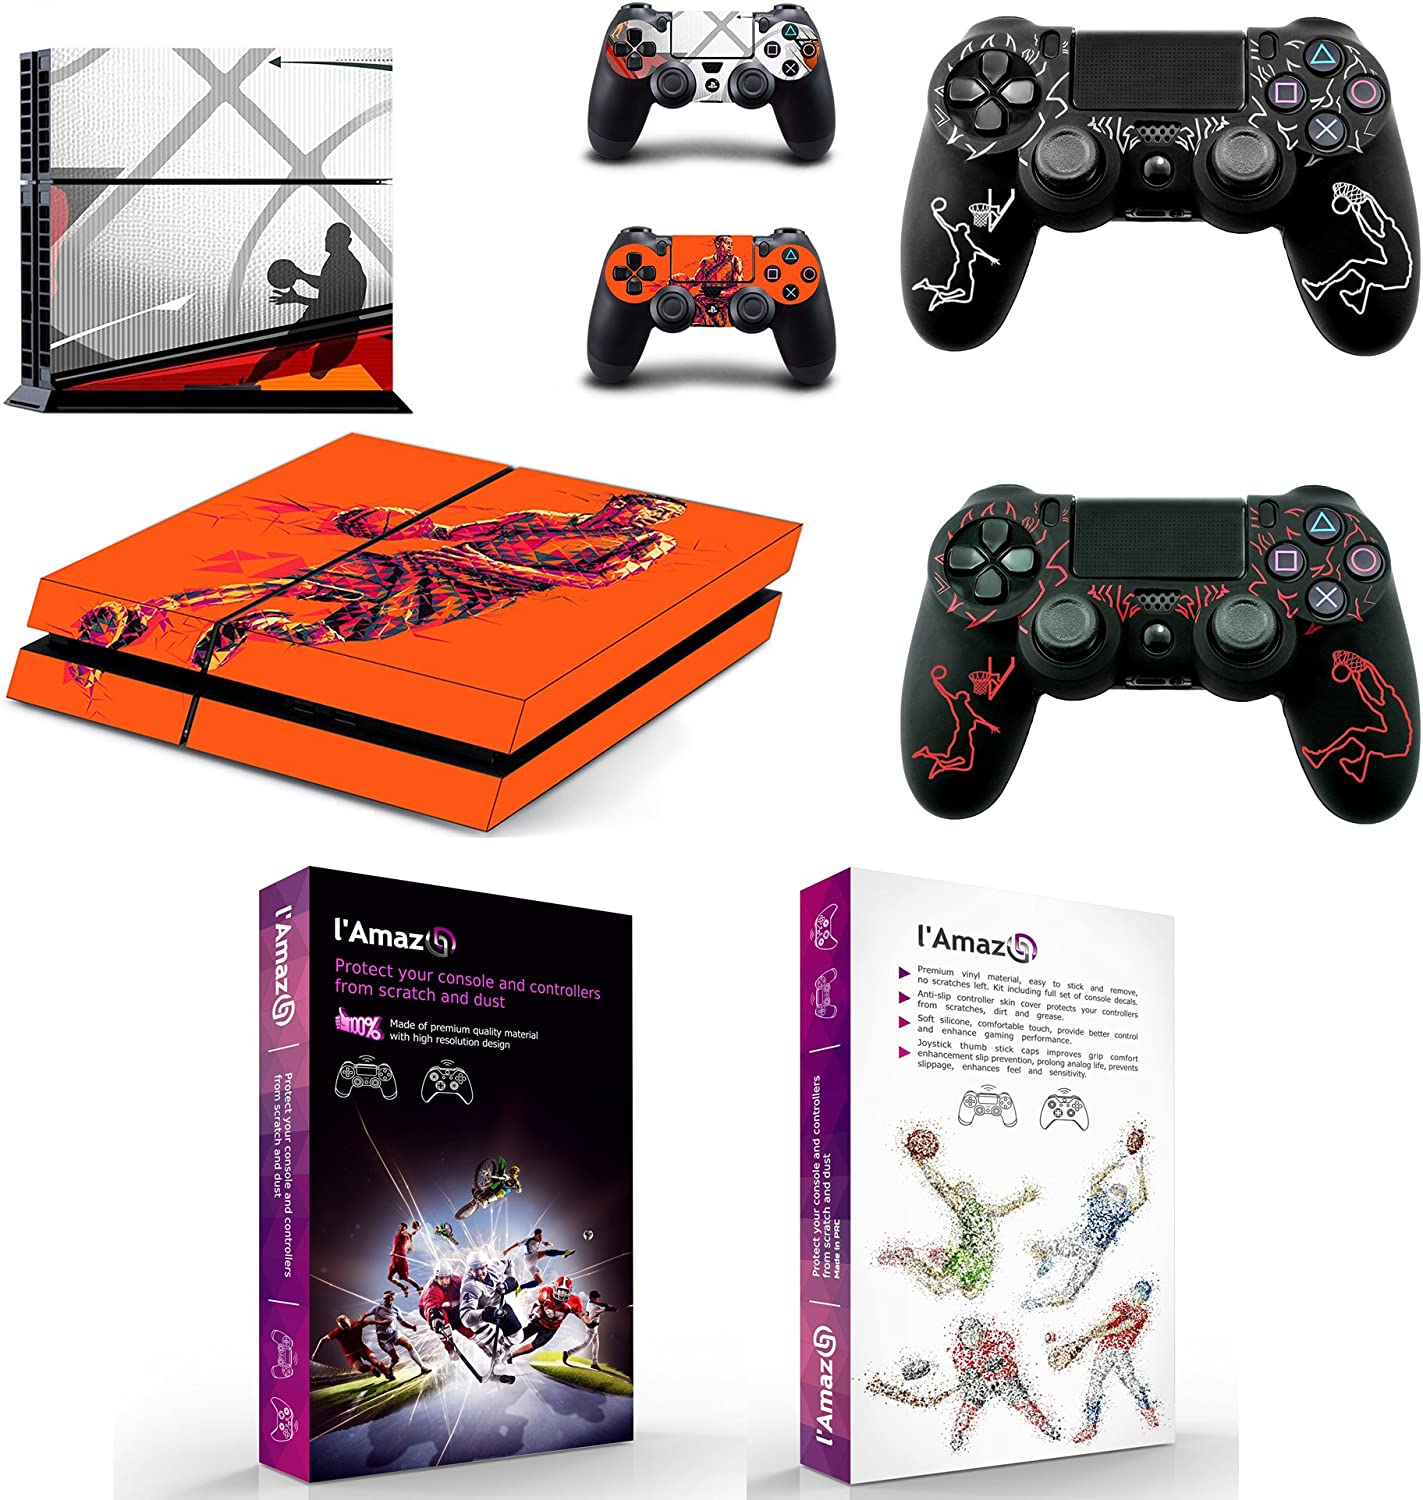 L'Amazo Protective Playstation 4 Skins Bundle Set of Sticker Vinyl decals for console and Ps4 controller silicone cover cases in Gift Box Gamer Kit Basketball Design